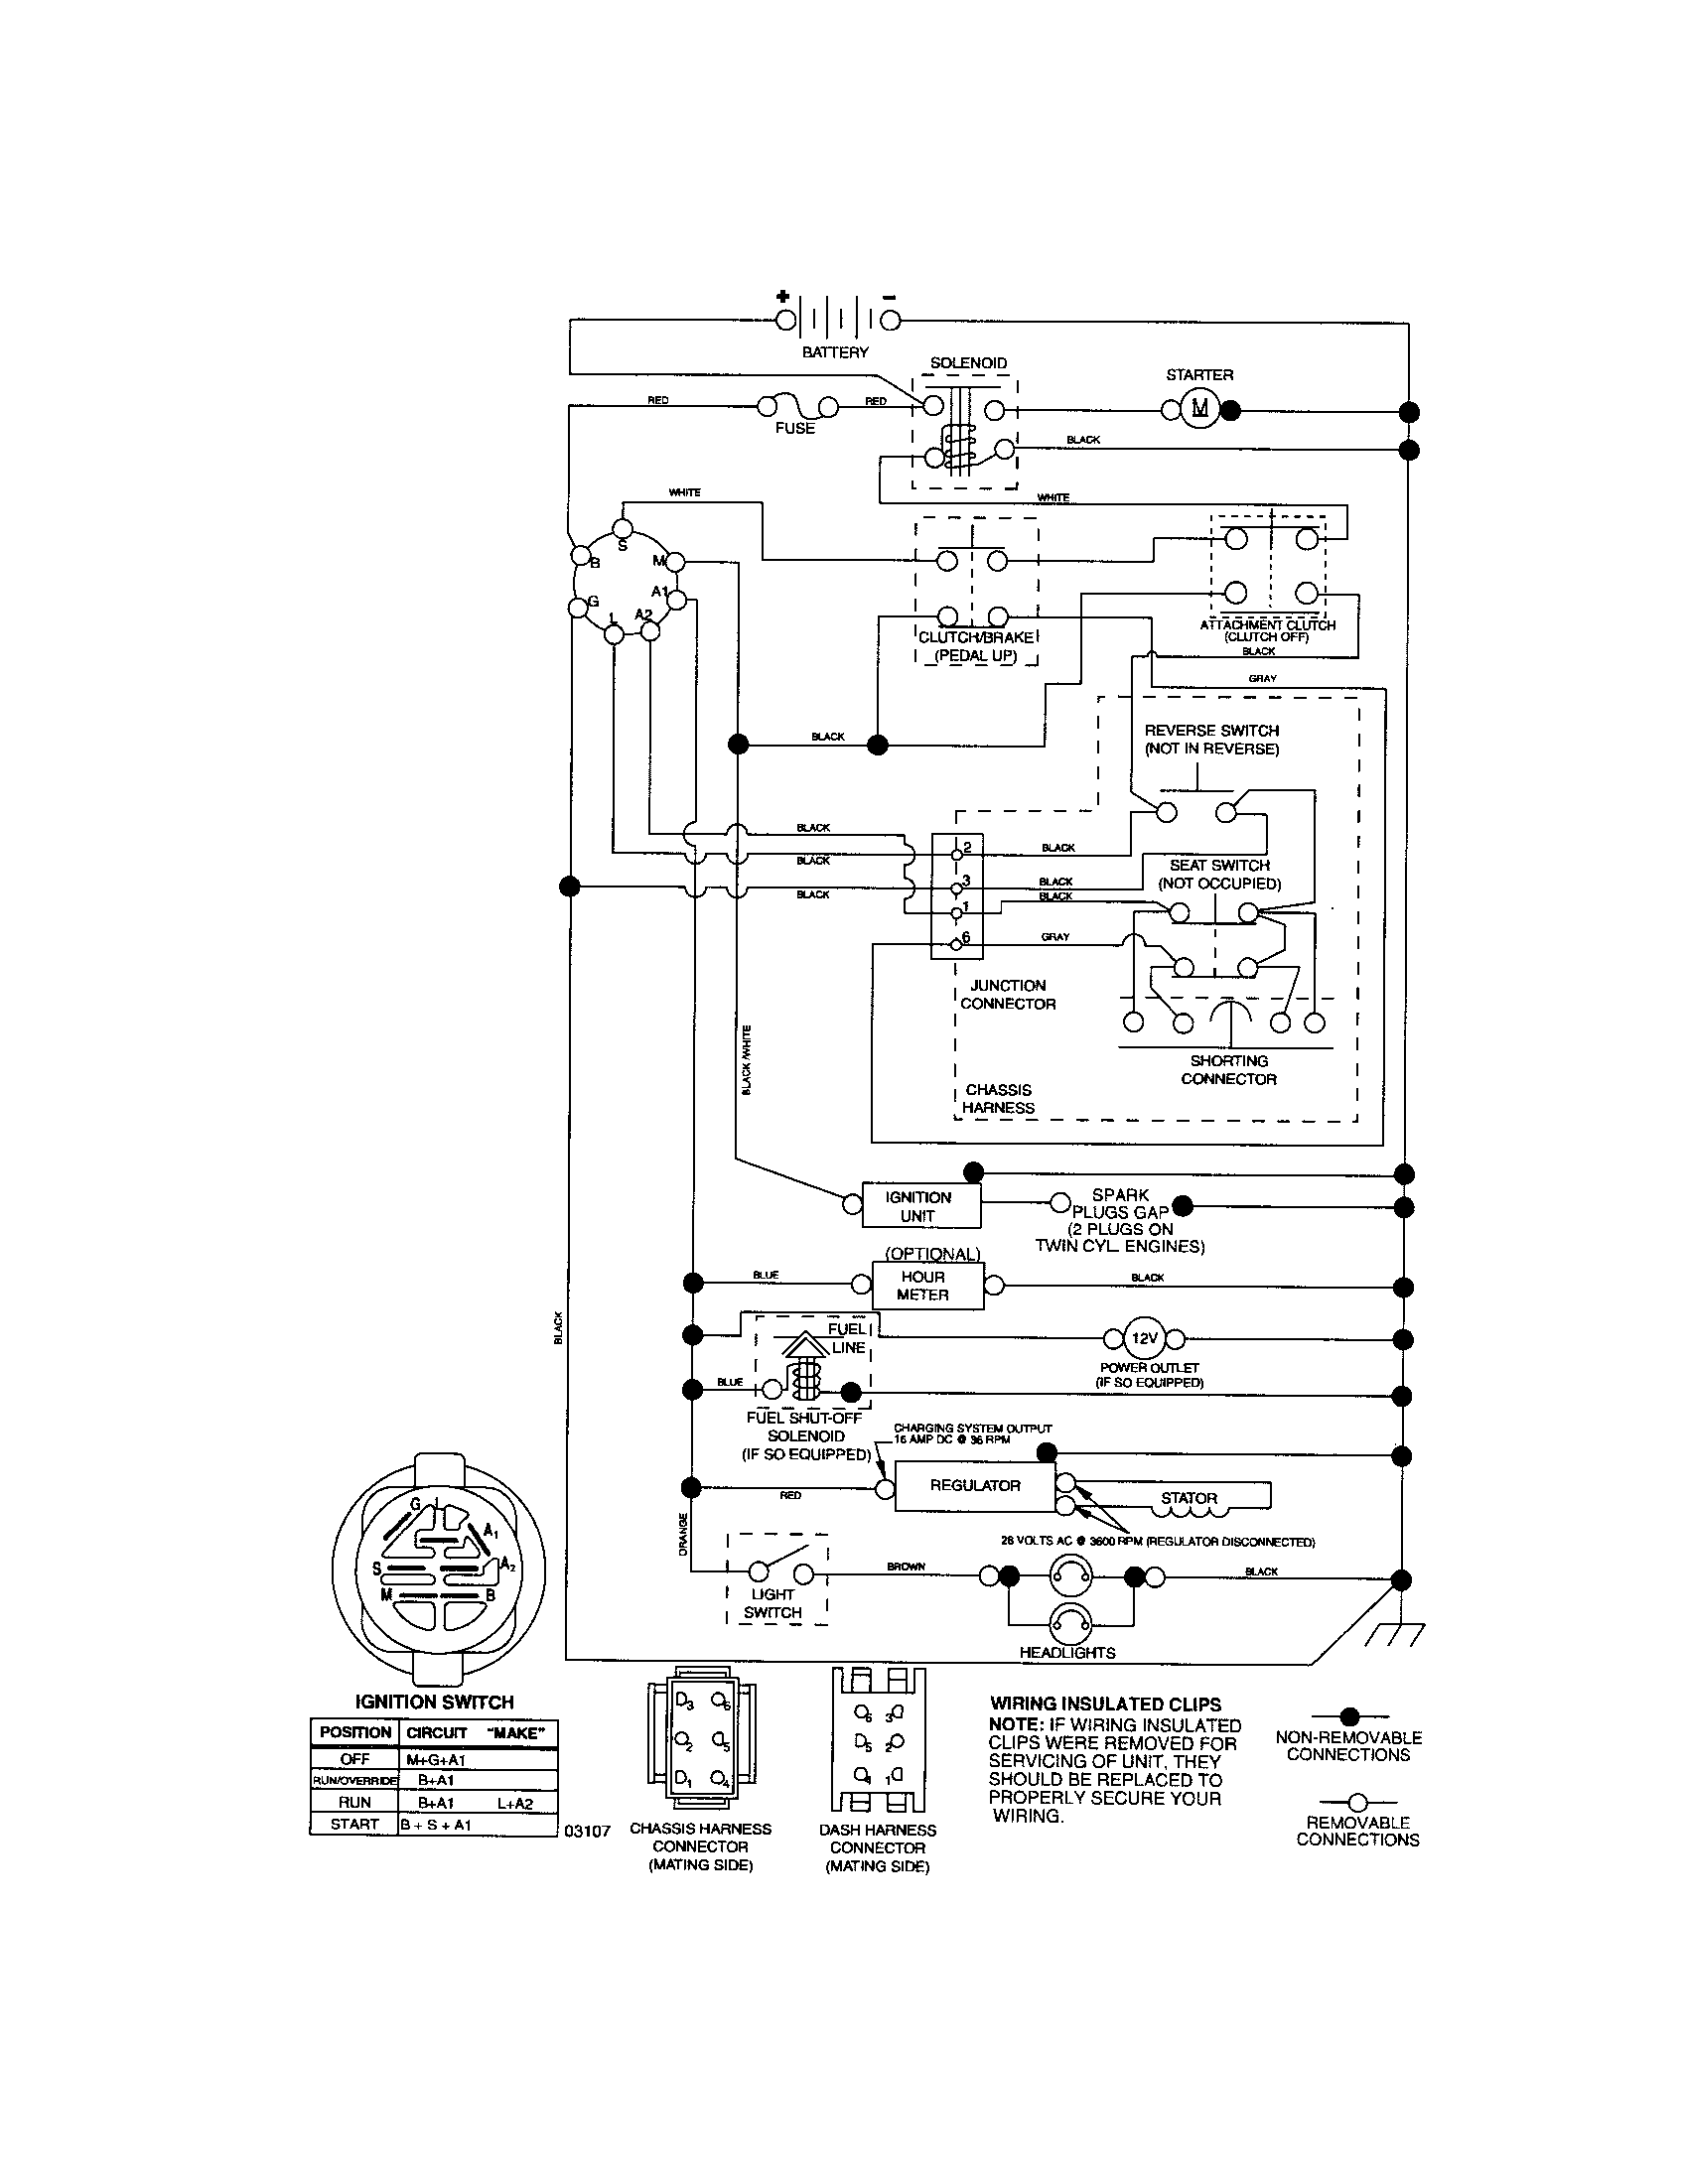 small resolution of 2001 mazda protege fuse box diagram